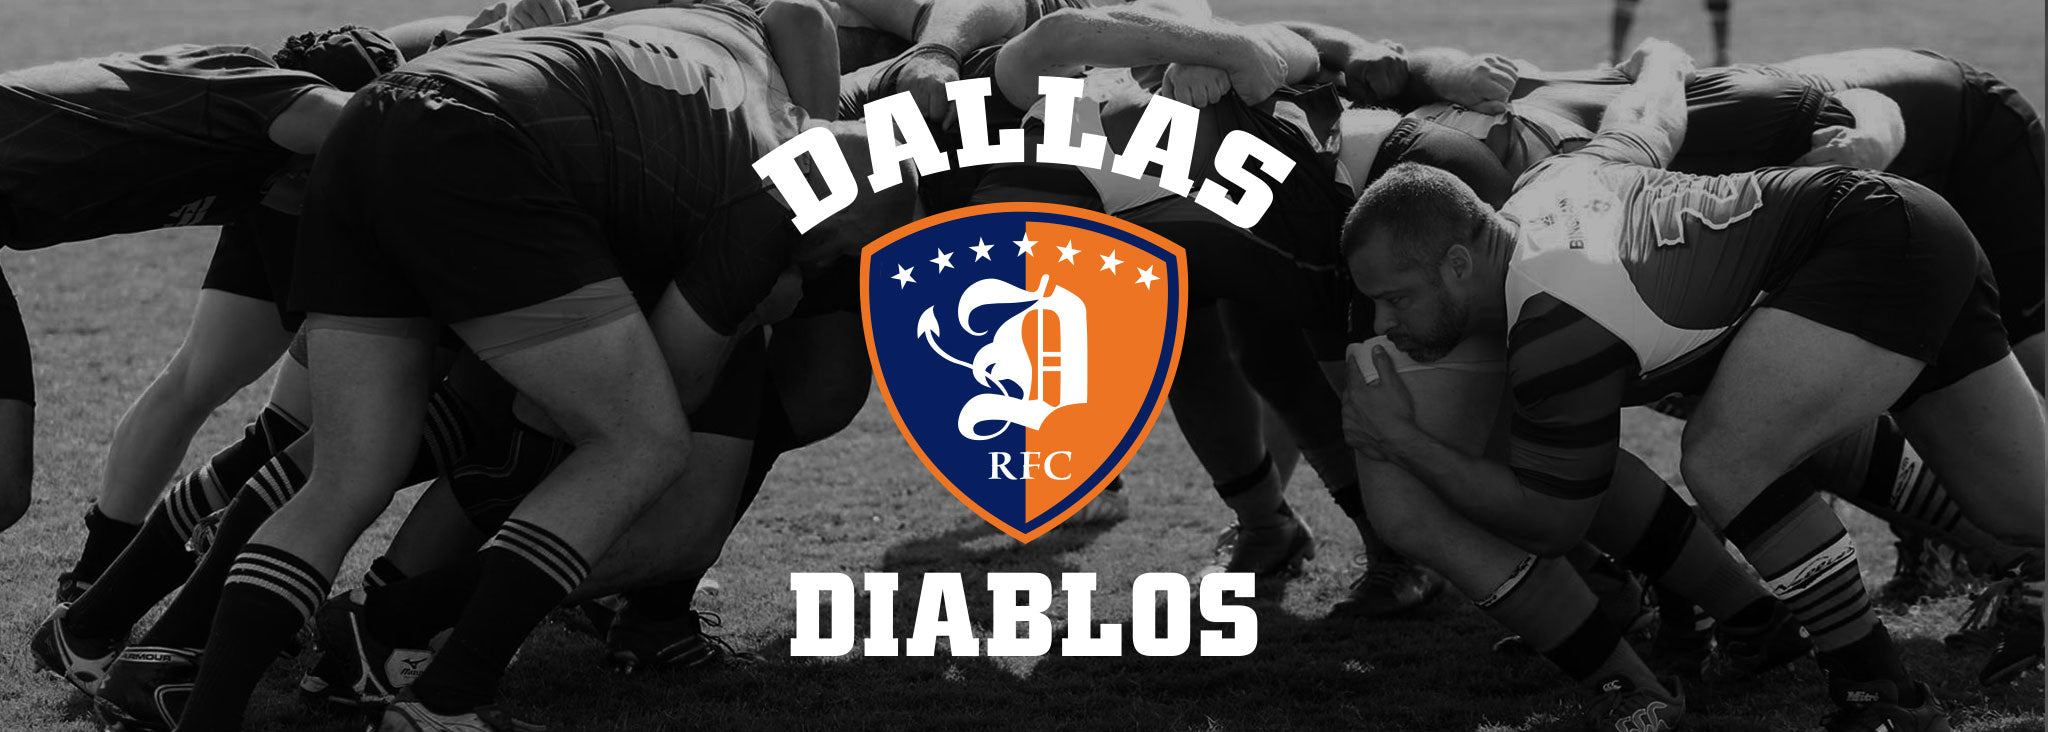 Dallas Diablos